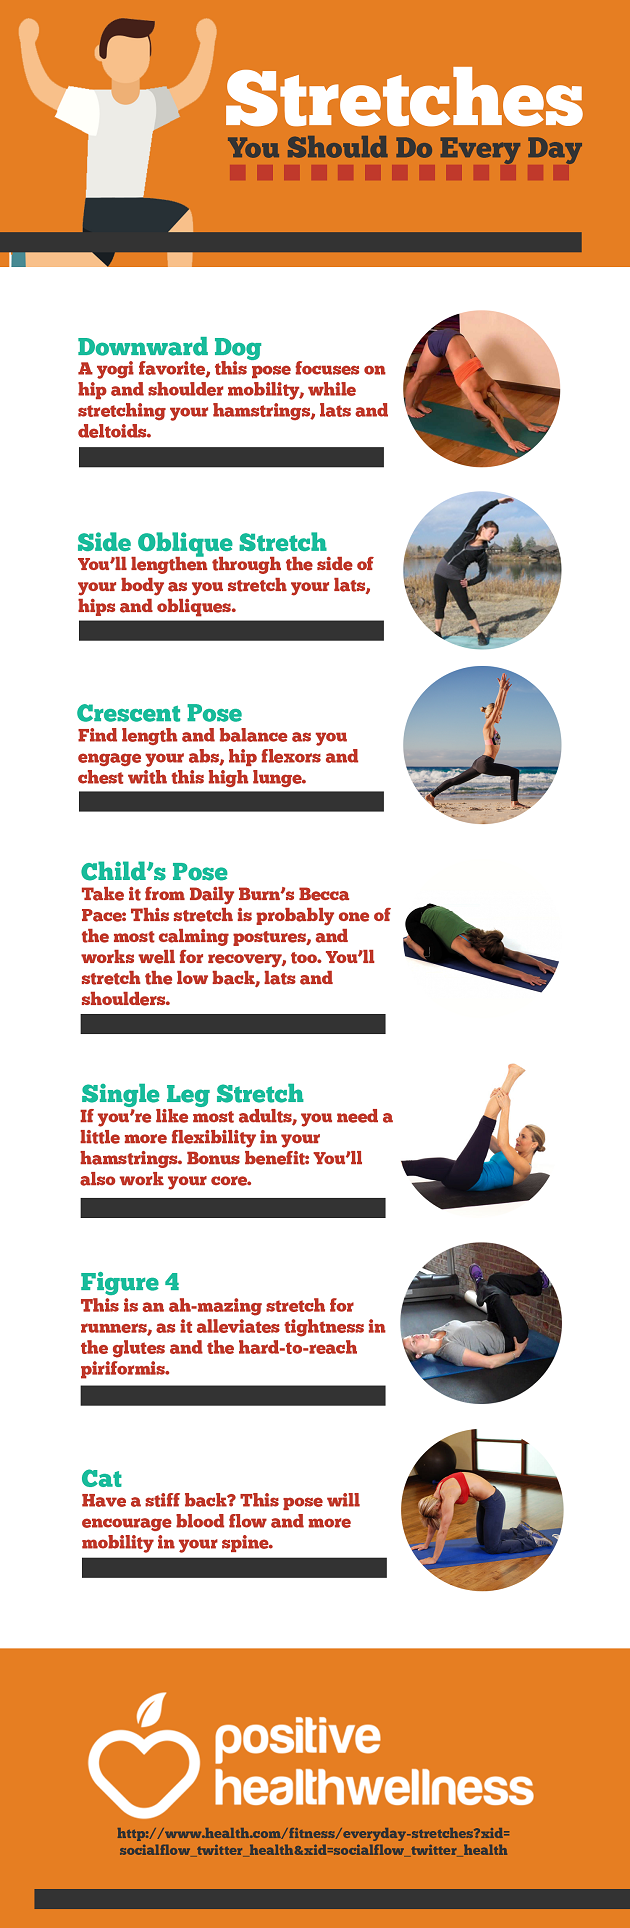 Stretches You Should Do Every Day